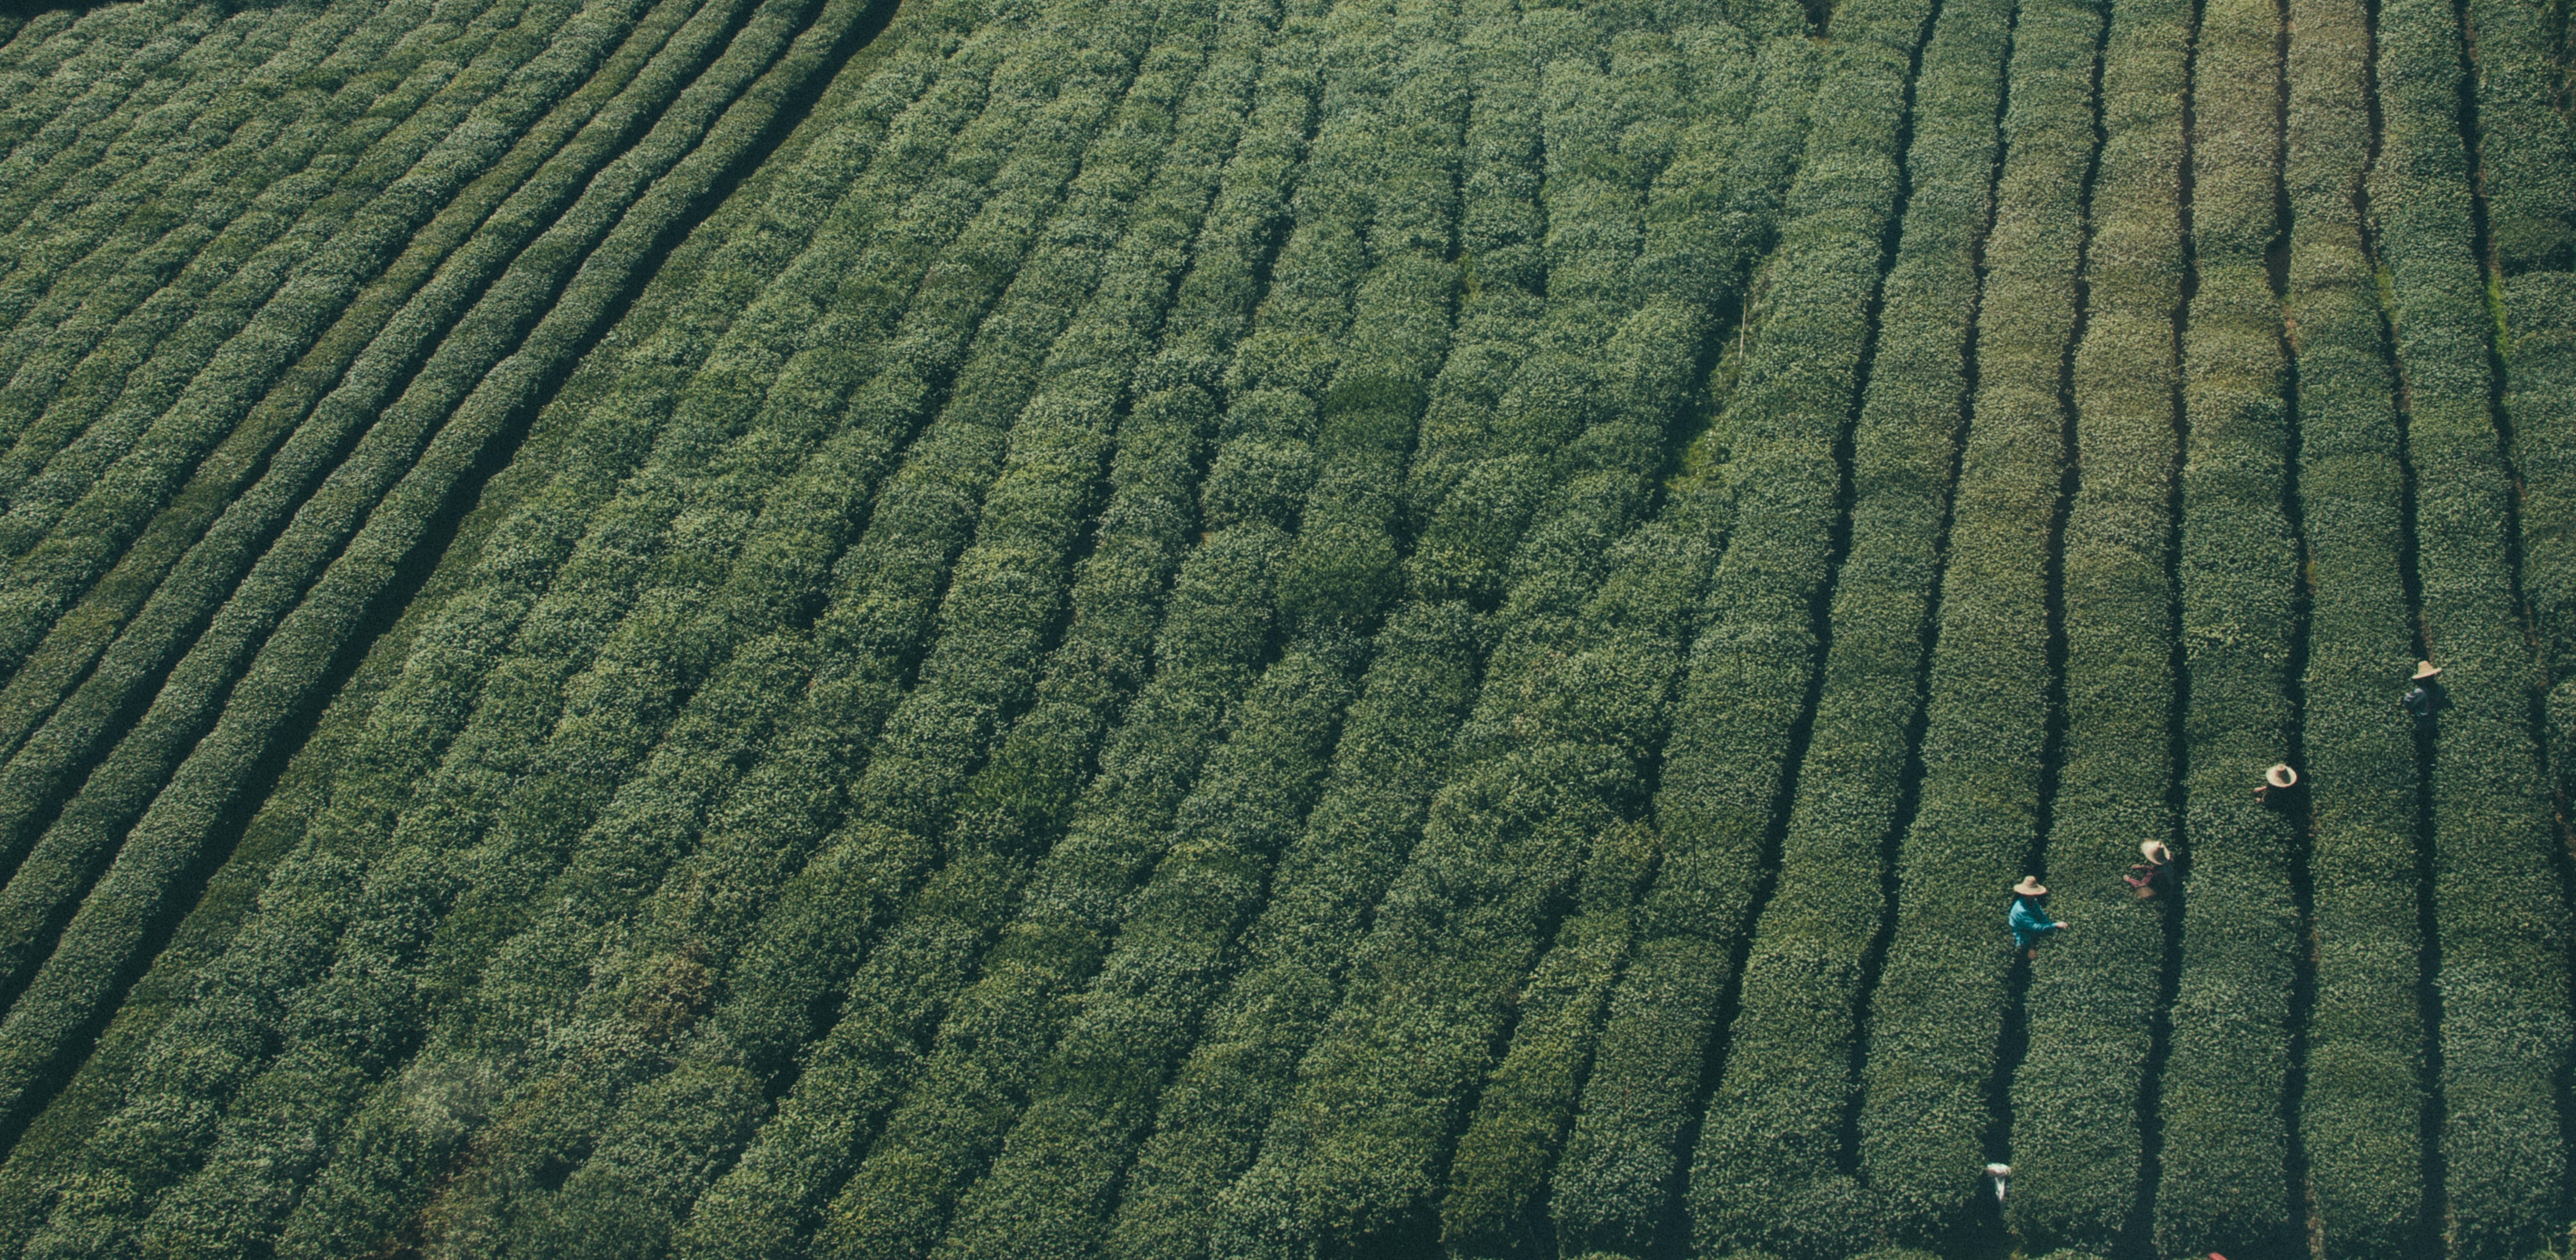 A top view of a green plantation with people in hats harvesting the crops